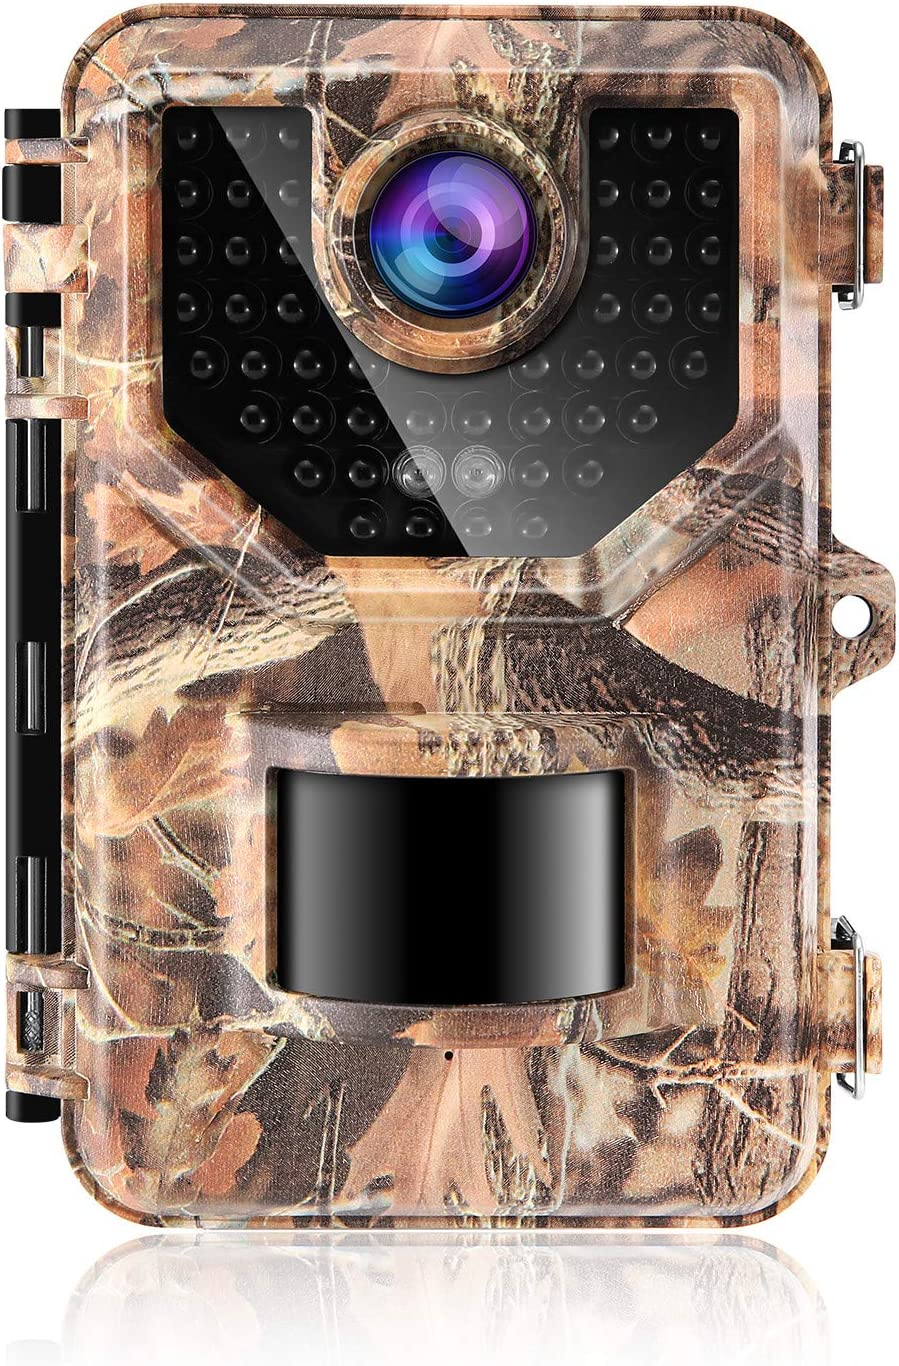 Sesern Trail Camera 16MP 1080P, IP66 Waterproof Game Cam with 940nm No Glow IR Night Vision to 65ft, 2.4 inches Color Screen, 0.2 Trigger Time Motion Activated, 120 Detection Range, Autumn Yellow